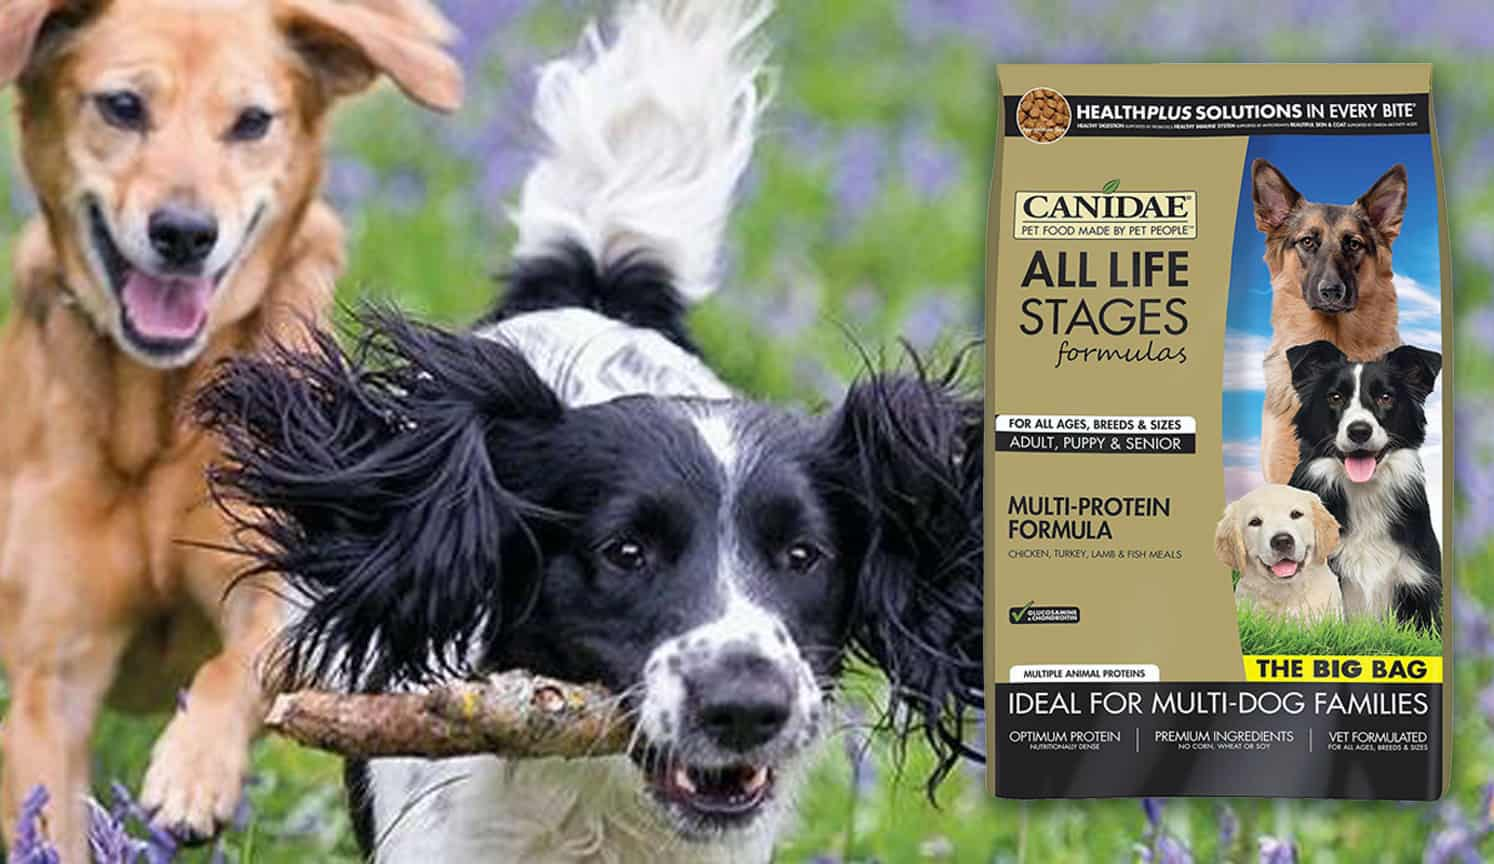 Premium Dog Food as the third related product of the Best Natural Dog Food